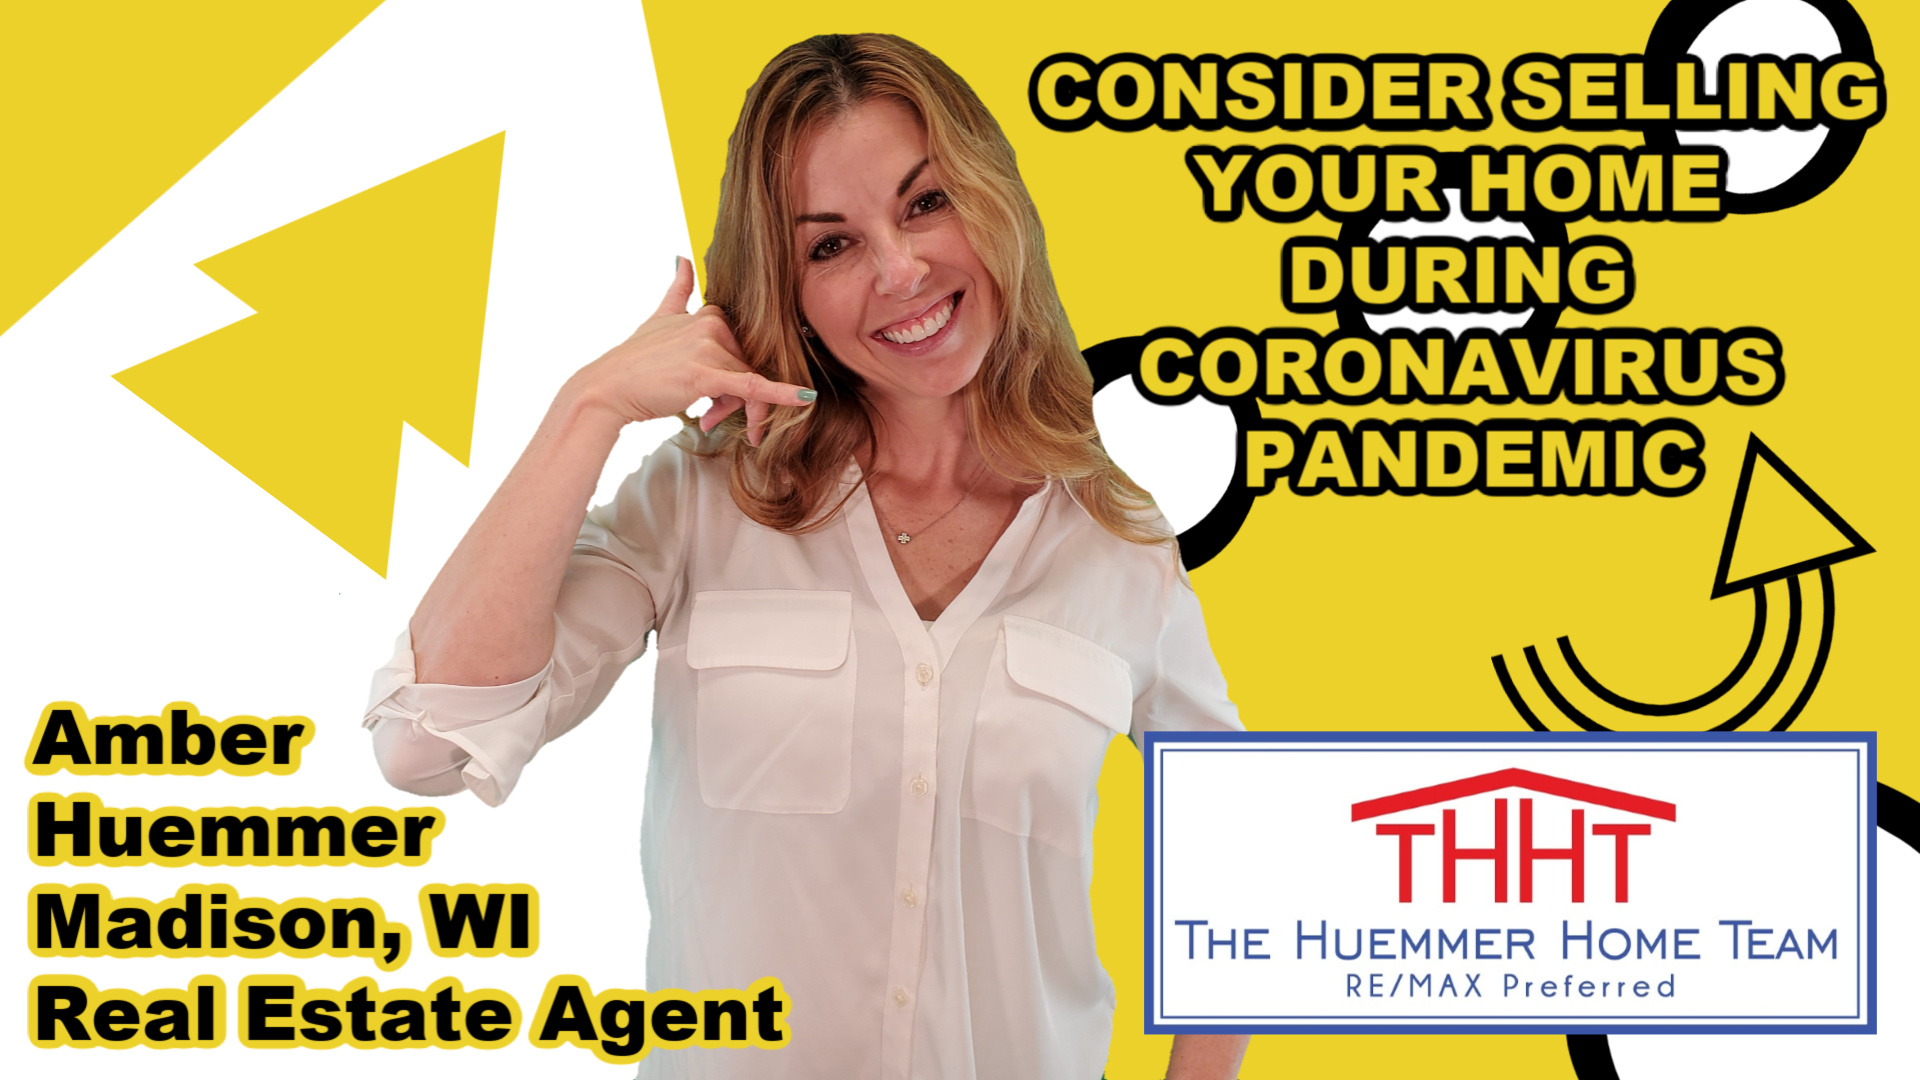 Consider Selling Your Home During Coronavirus Pandemic | The Huemmer Home Team | Amber Huemmer Realtor Madison, WI